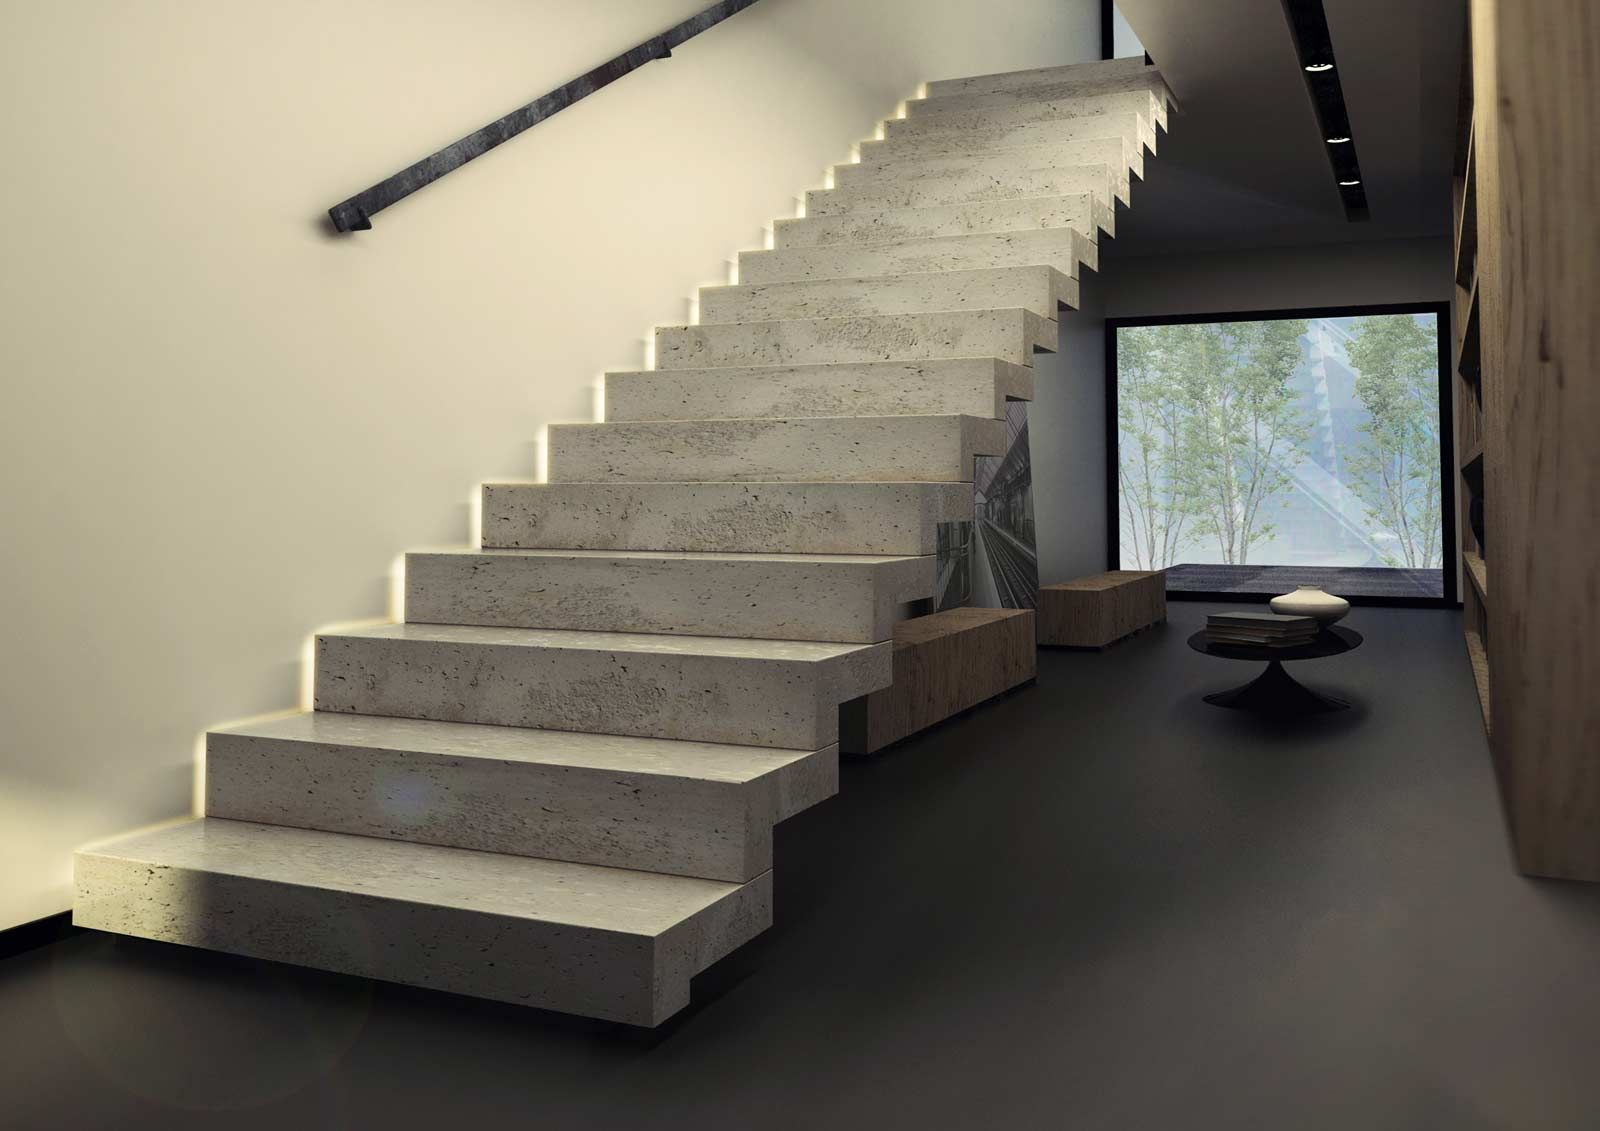 escalier beton postthumb beton m bel concrete design. Black Bedroom Furniture Sets. Home Design Ideas